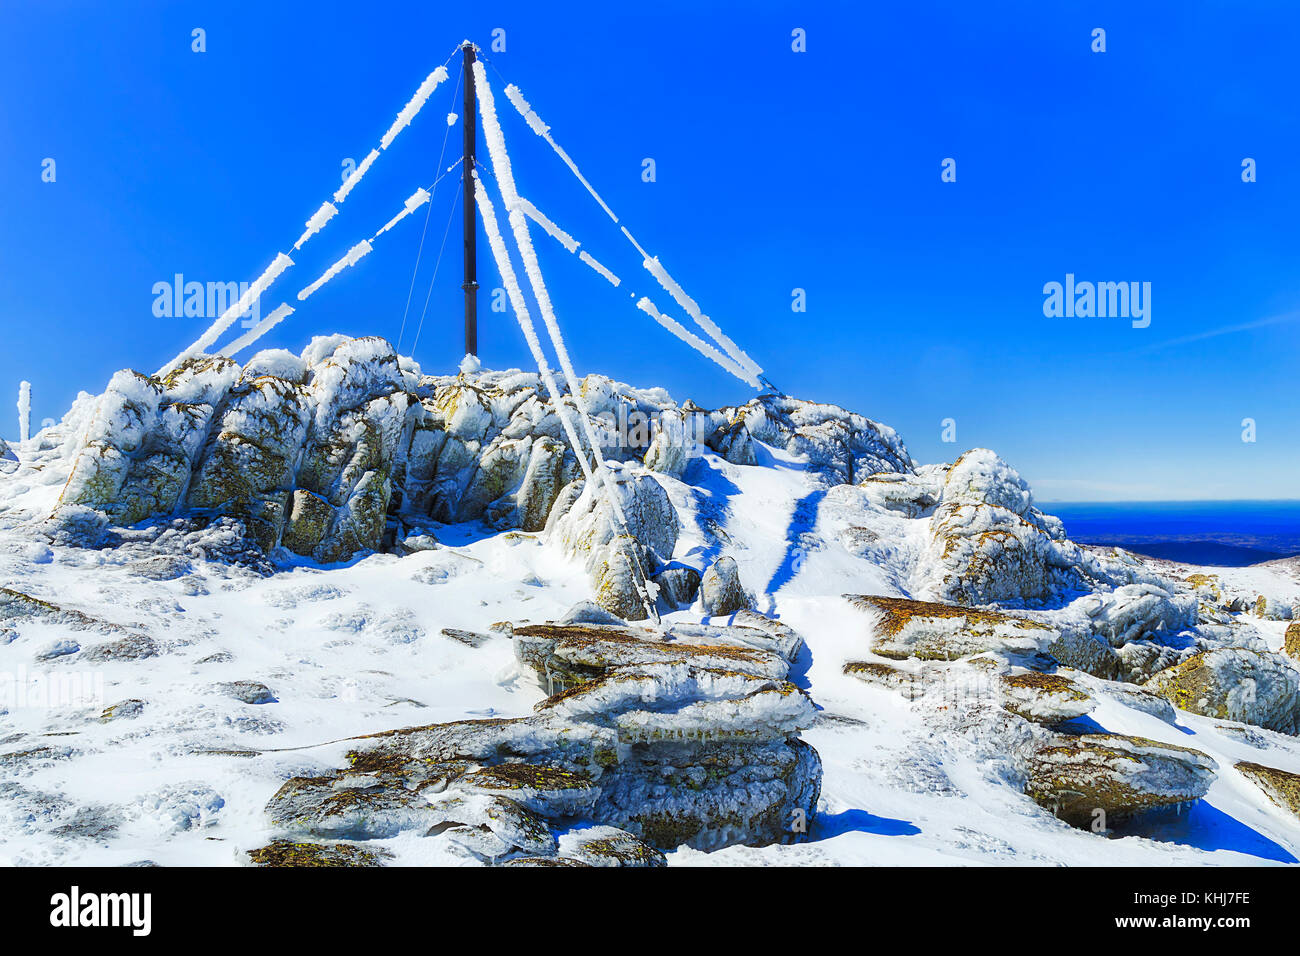 Back Perisher mount top in Snowy mountains national park in Winter with peak top mast, cables and antennae covered - Stock Image